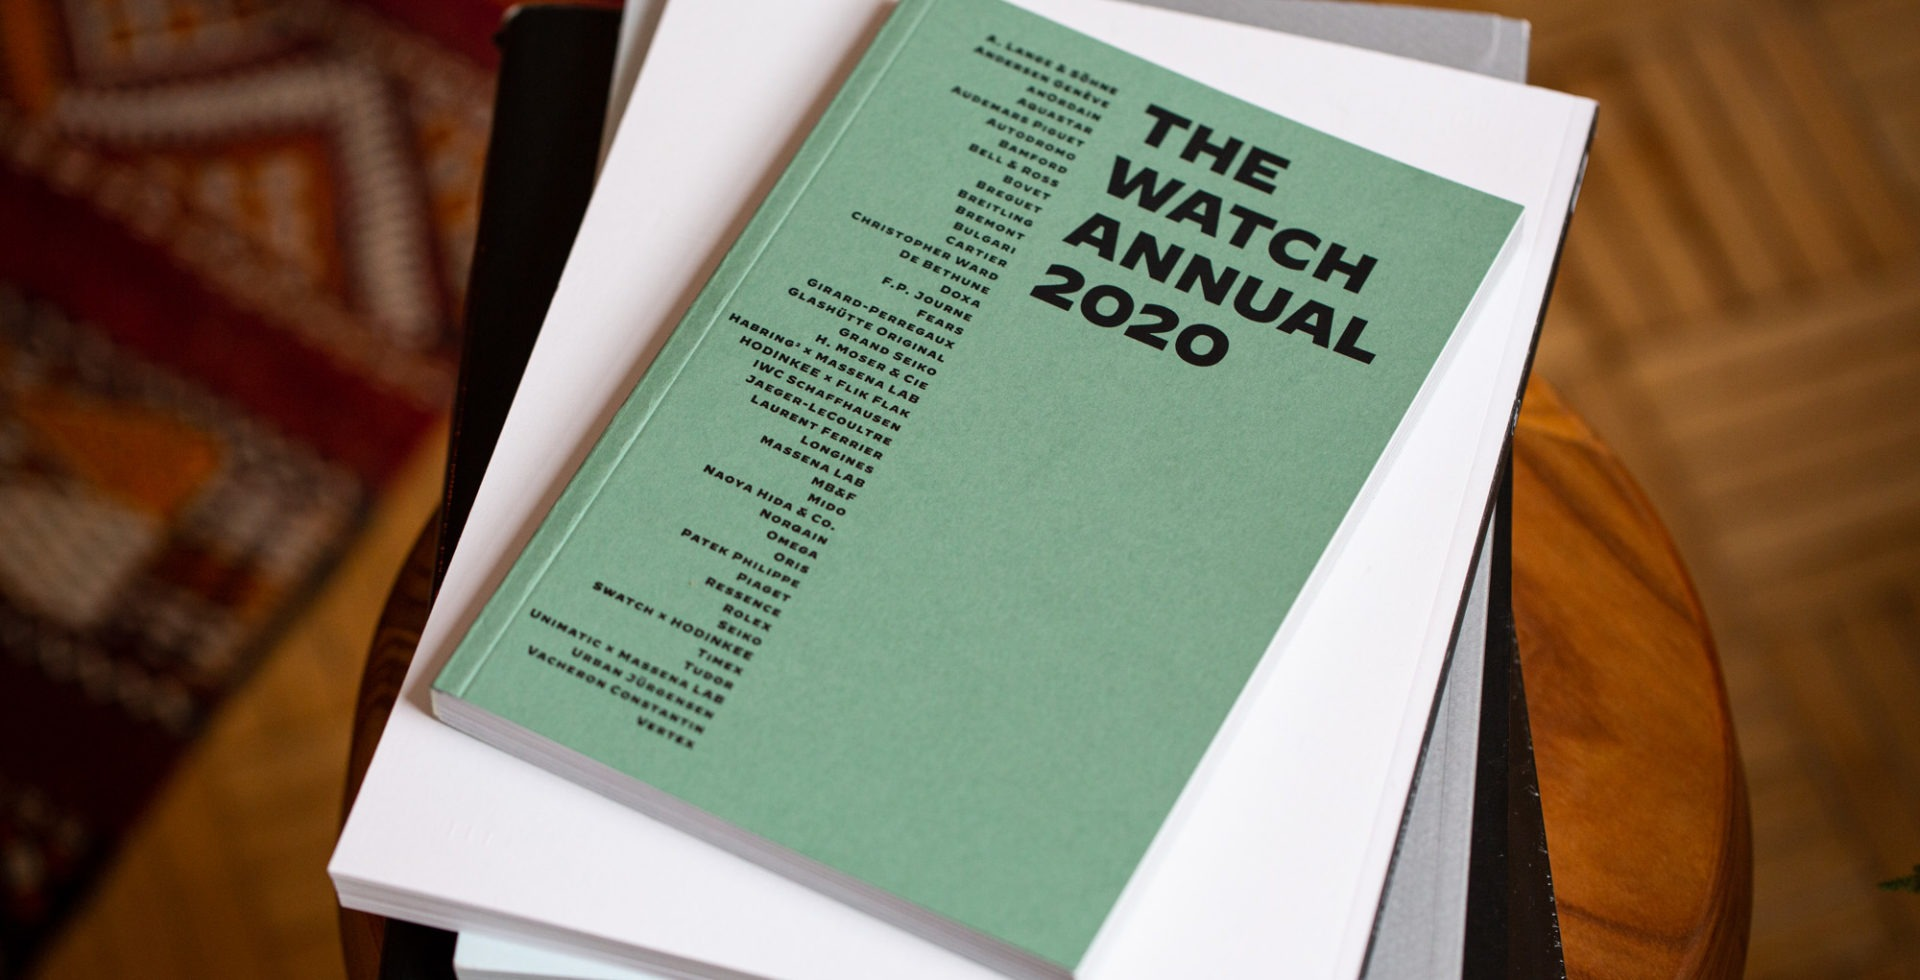 THE WATCH ANNUAL 2020